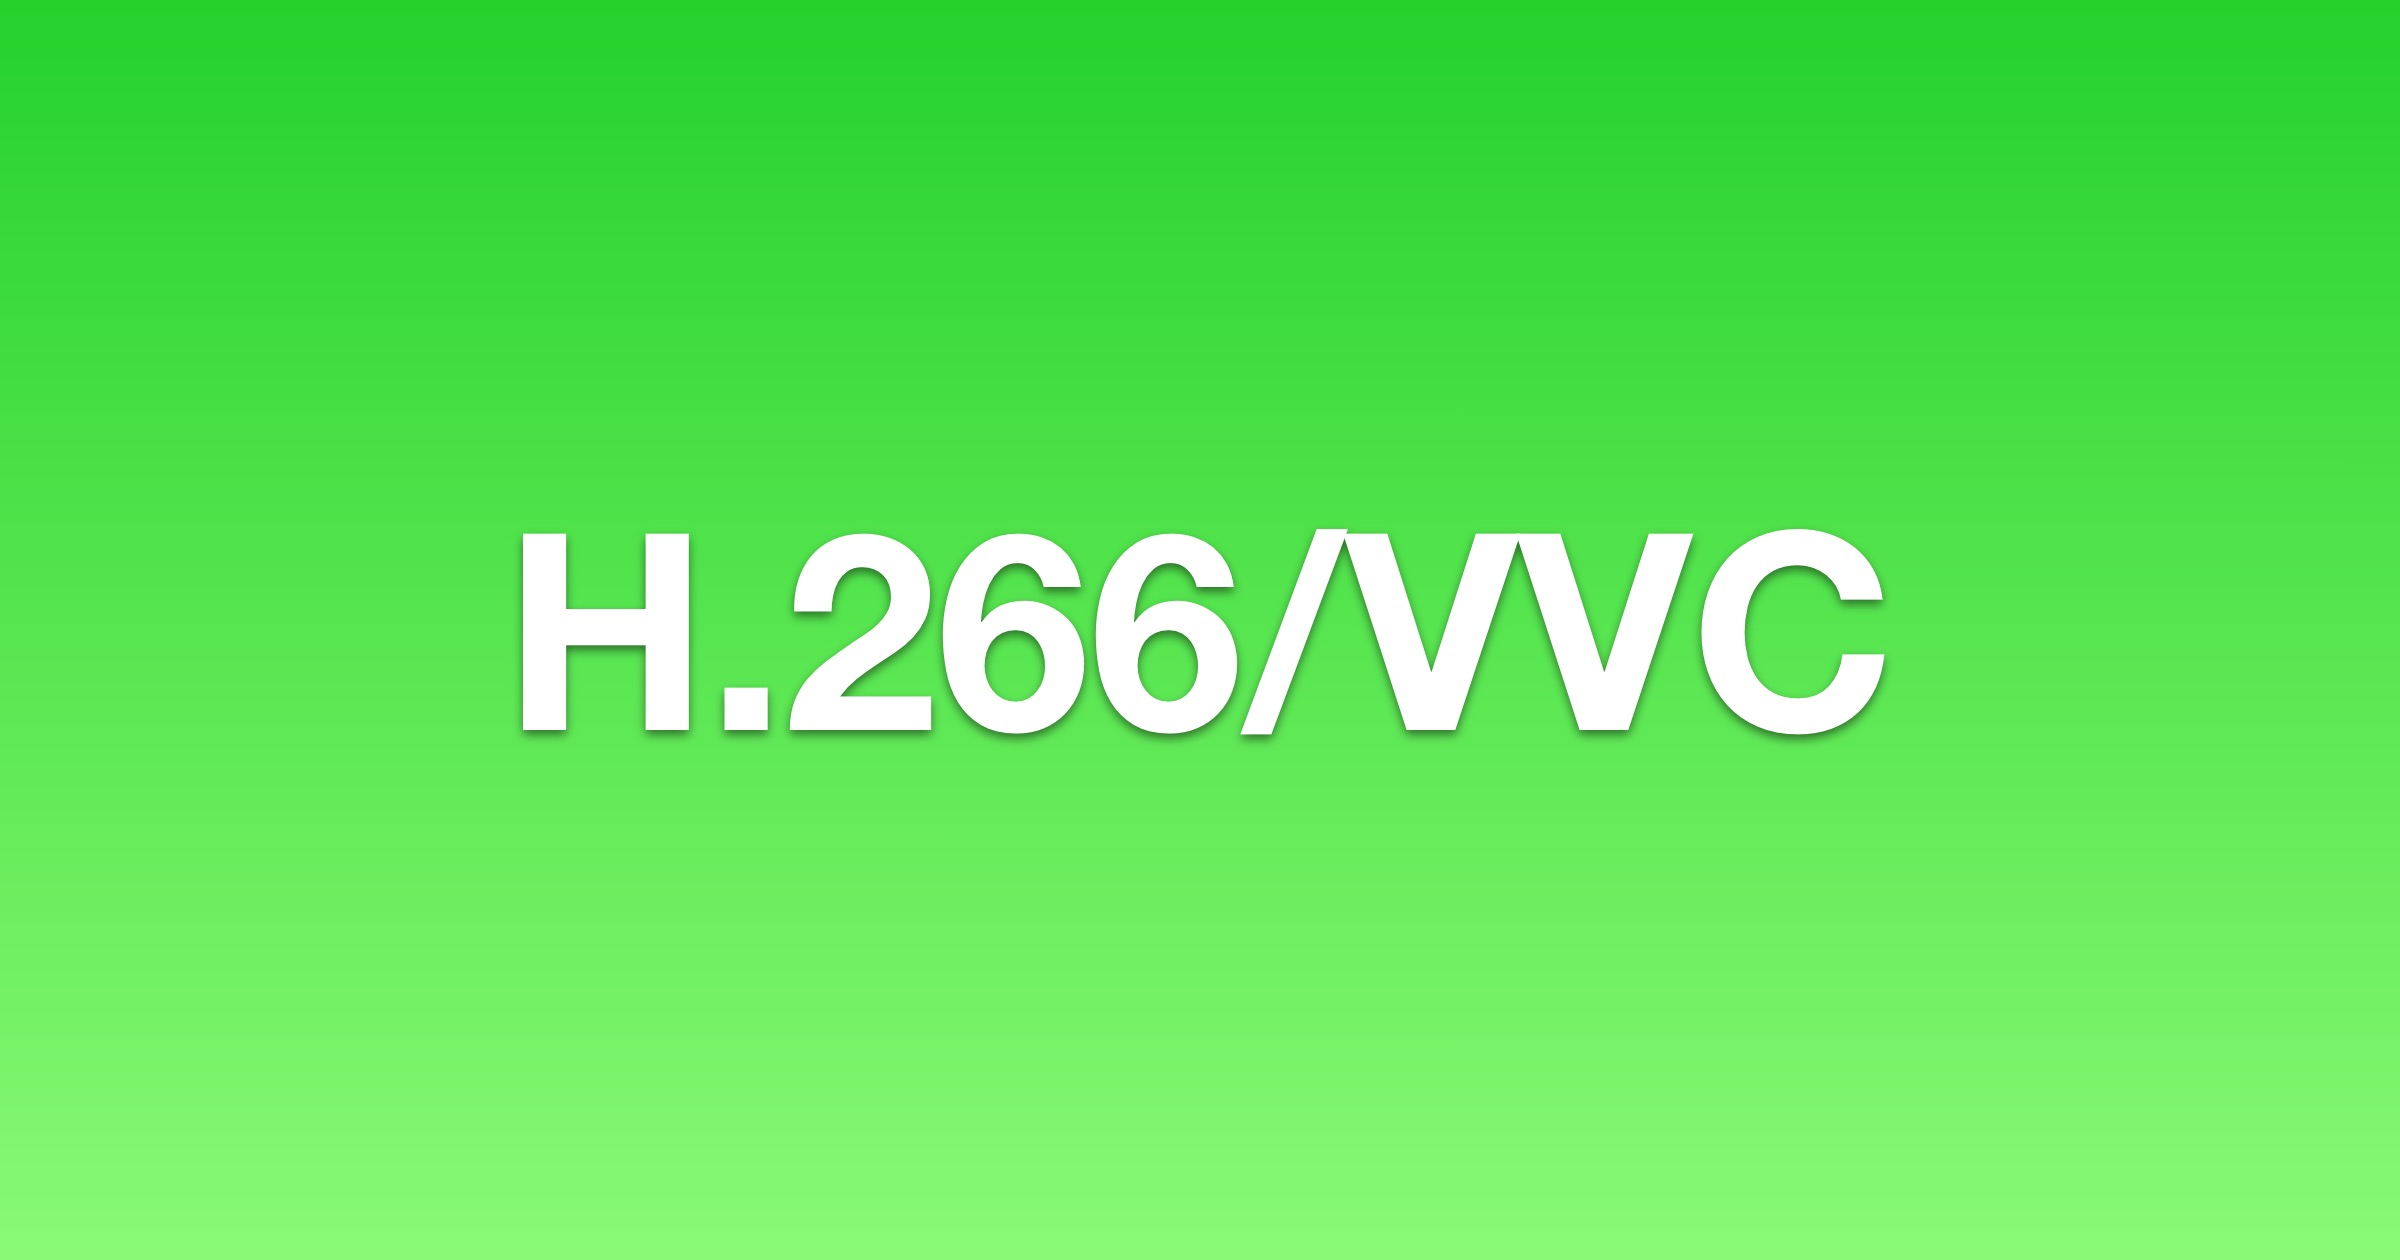 H.266 VVC